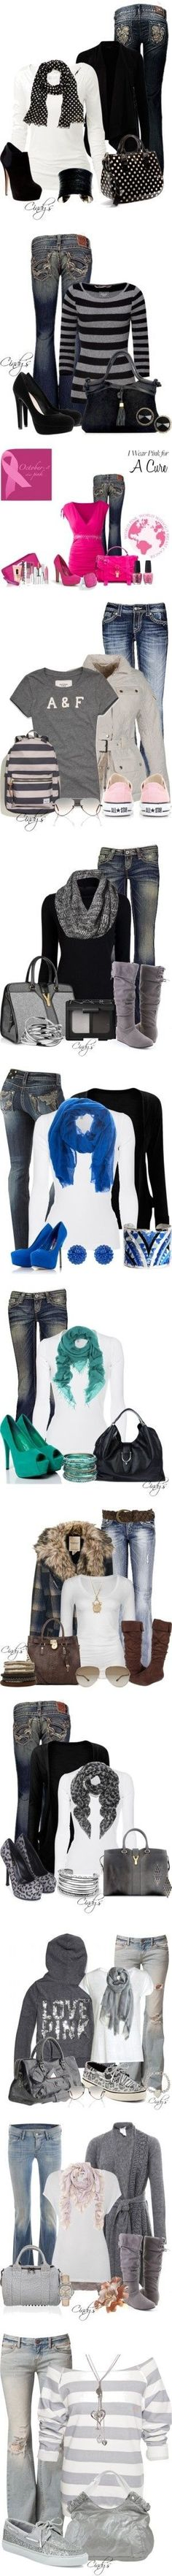 Find More at => http://feedproxy.google.com/~r/amazingoutfits/~3/OHWdvjL8hEc/AmazingOutfits.page